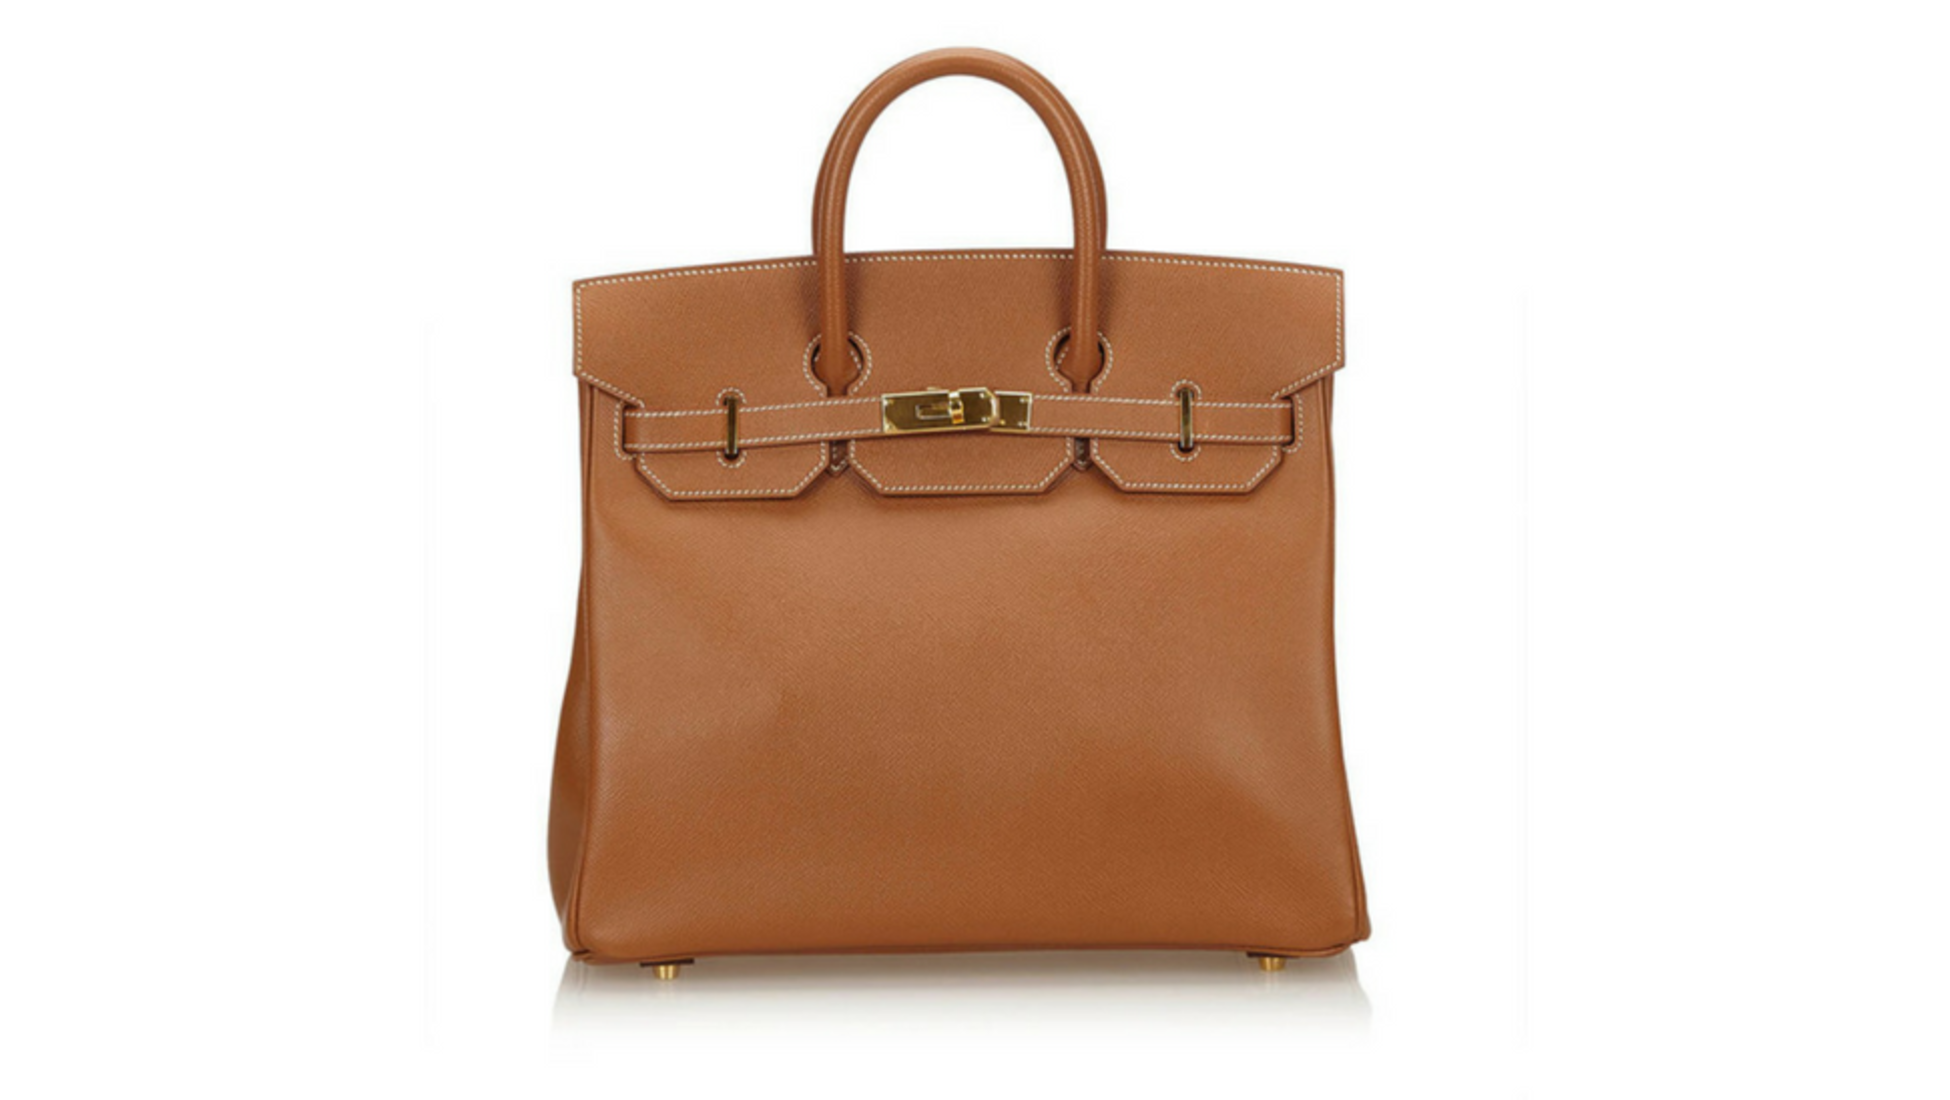 a5ad27811bf The inspiration for its unique design came to Hermès CEO Jean-Louis Dumas  in 1981